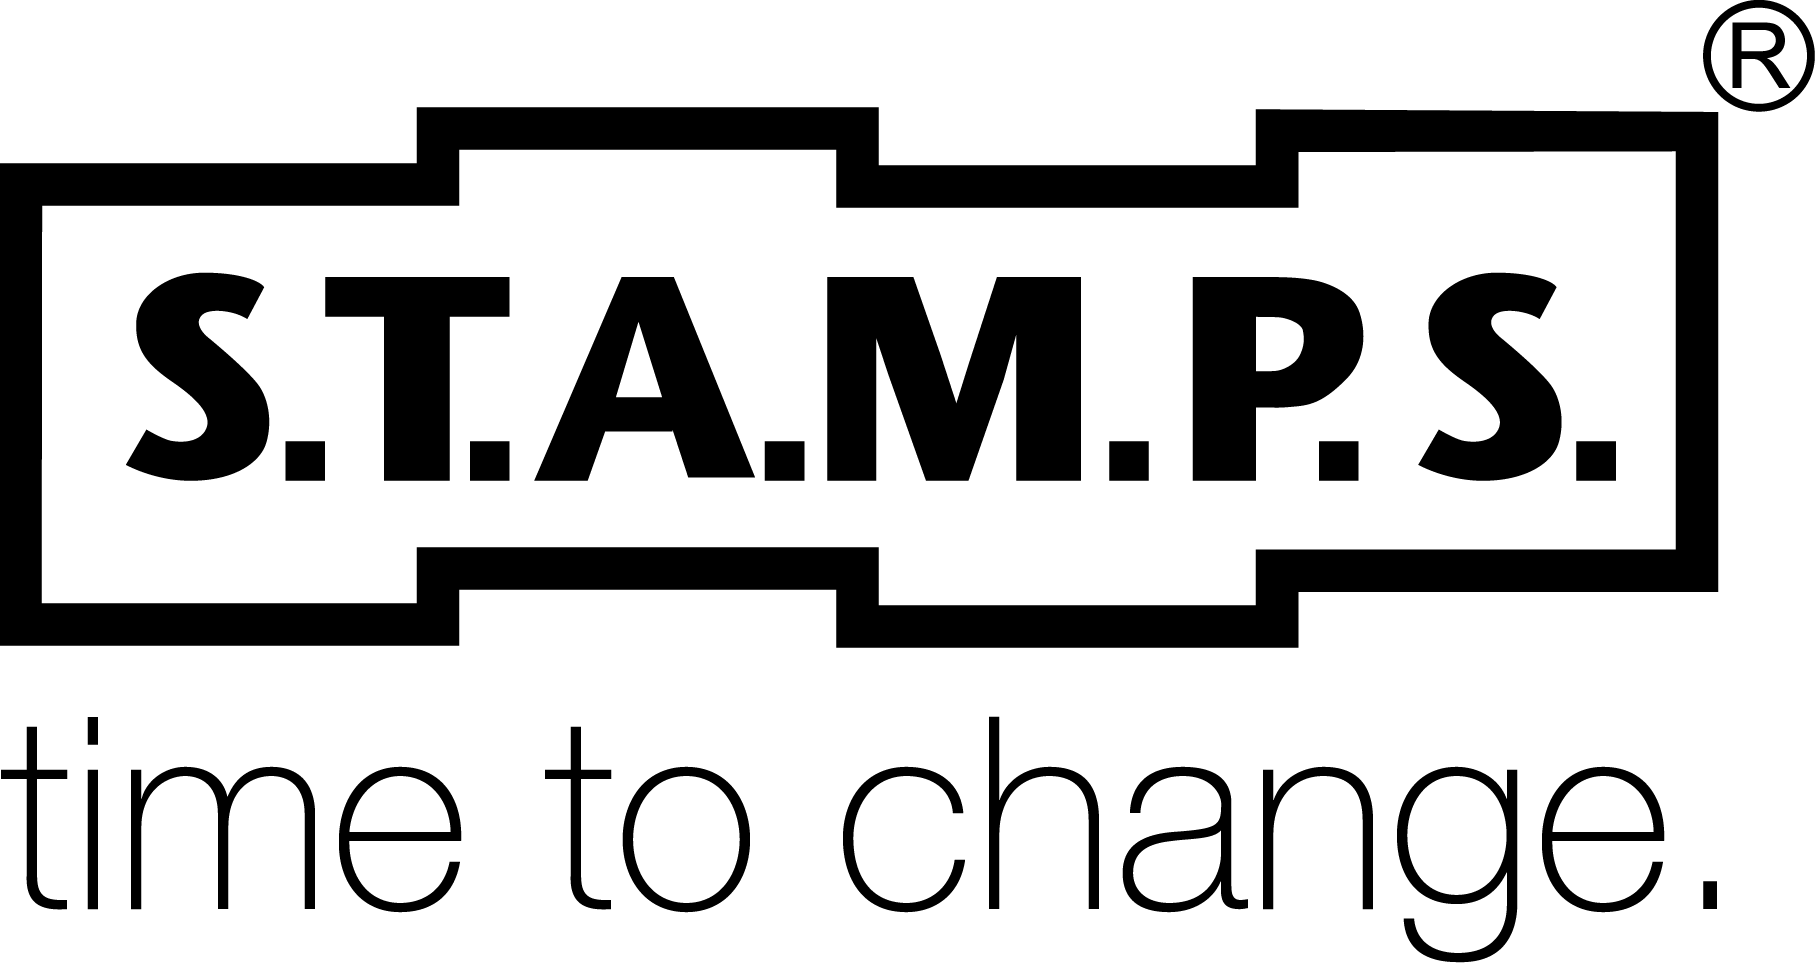 S.T.A.M.P.S - time to change